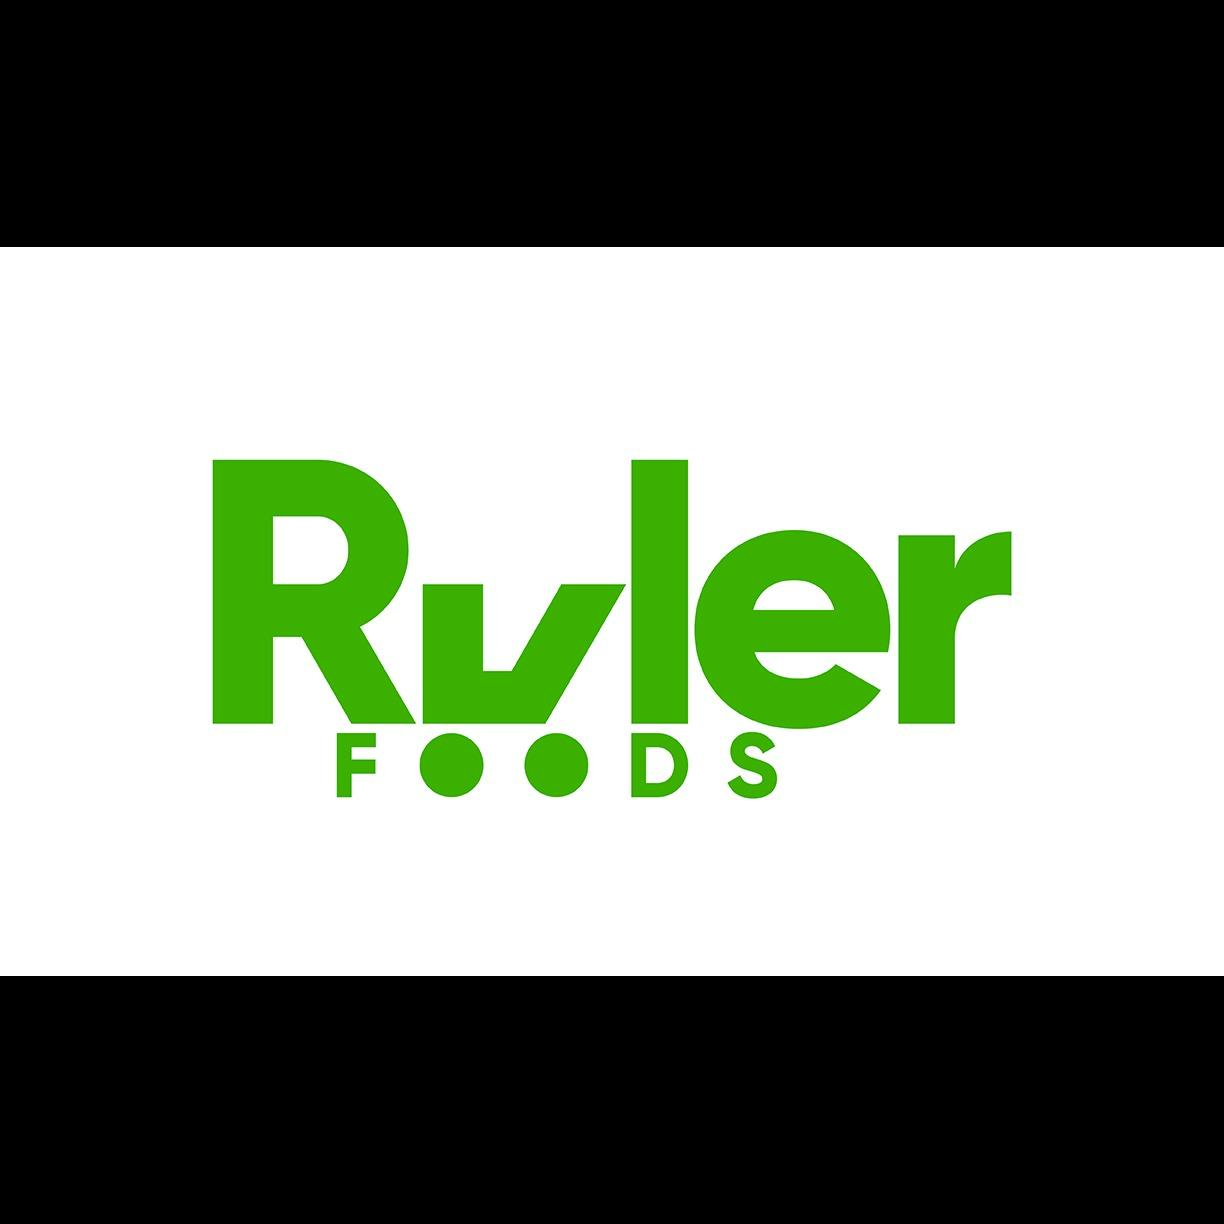 Ruler Foods - Lima, OH 45805 - (419)222-0181 | ShowMeLocal.com